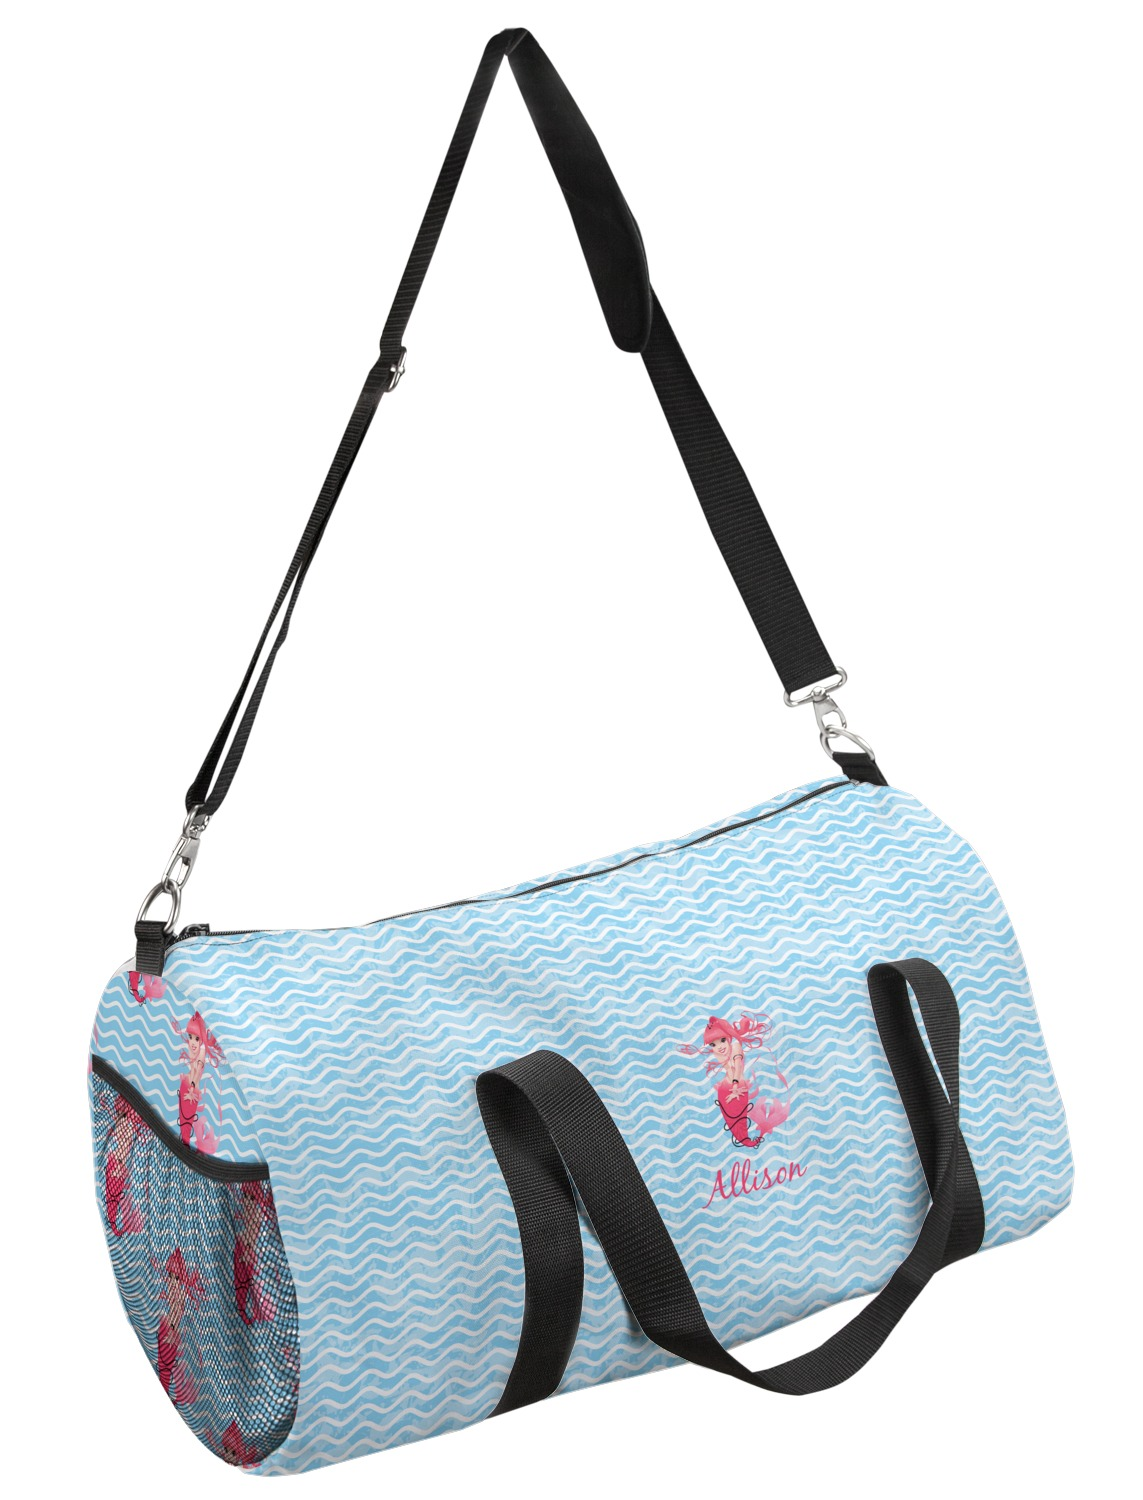 31e21515ee Mermaid Duffel Bag - Multiple Sizes (Personalized) - YouCustomizeIt